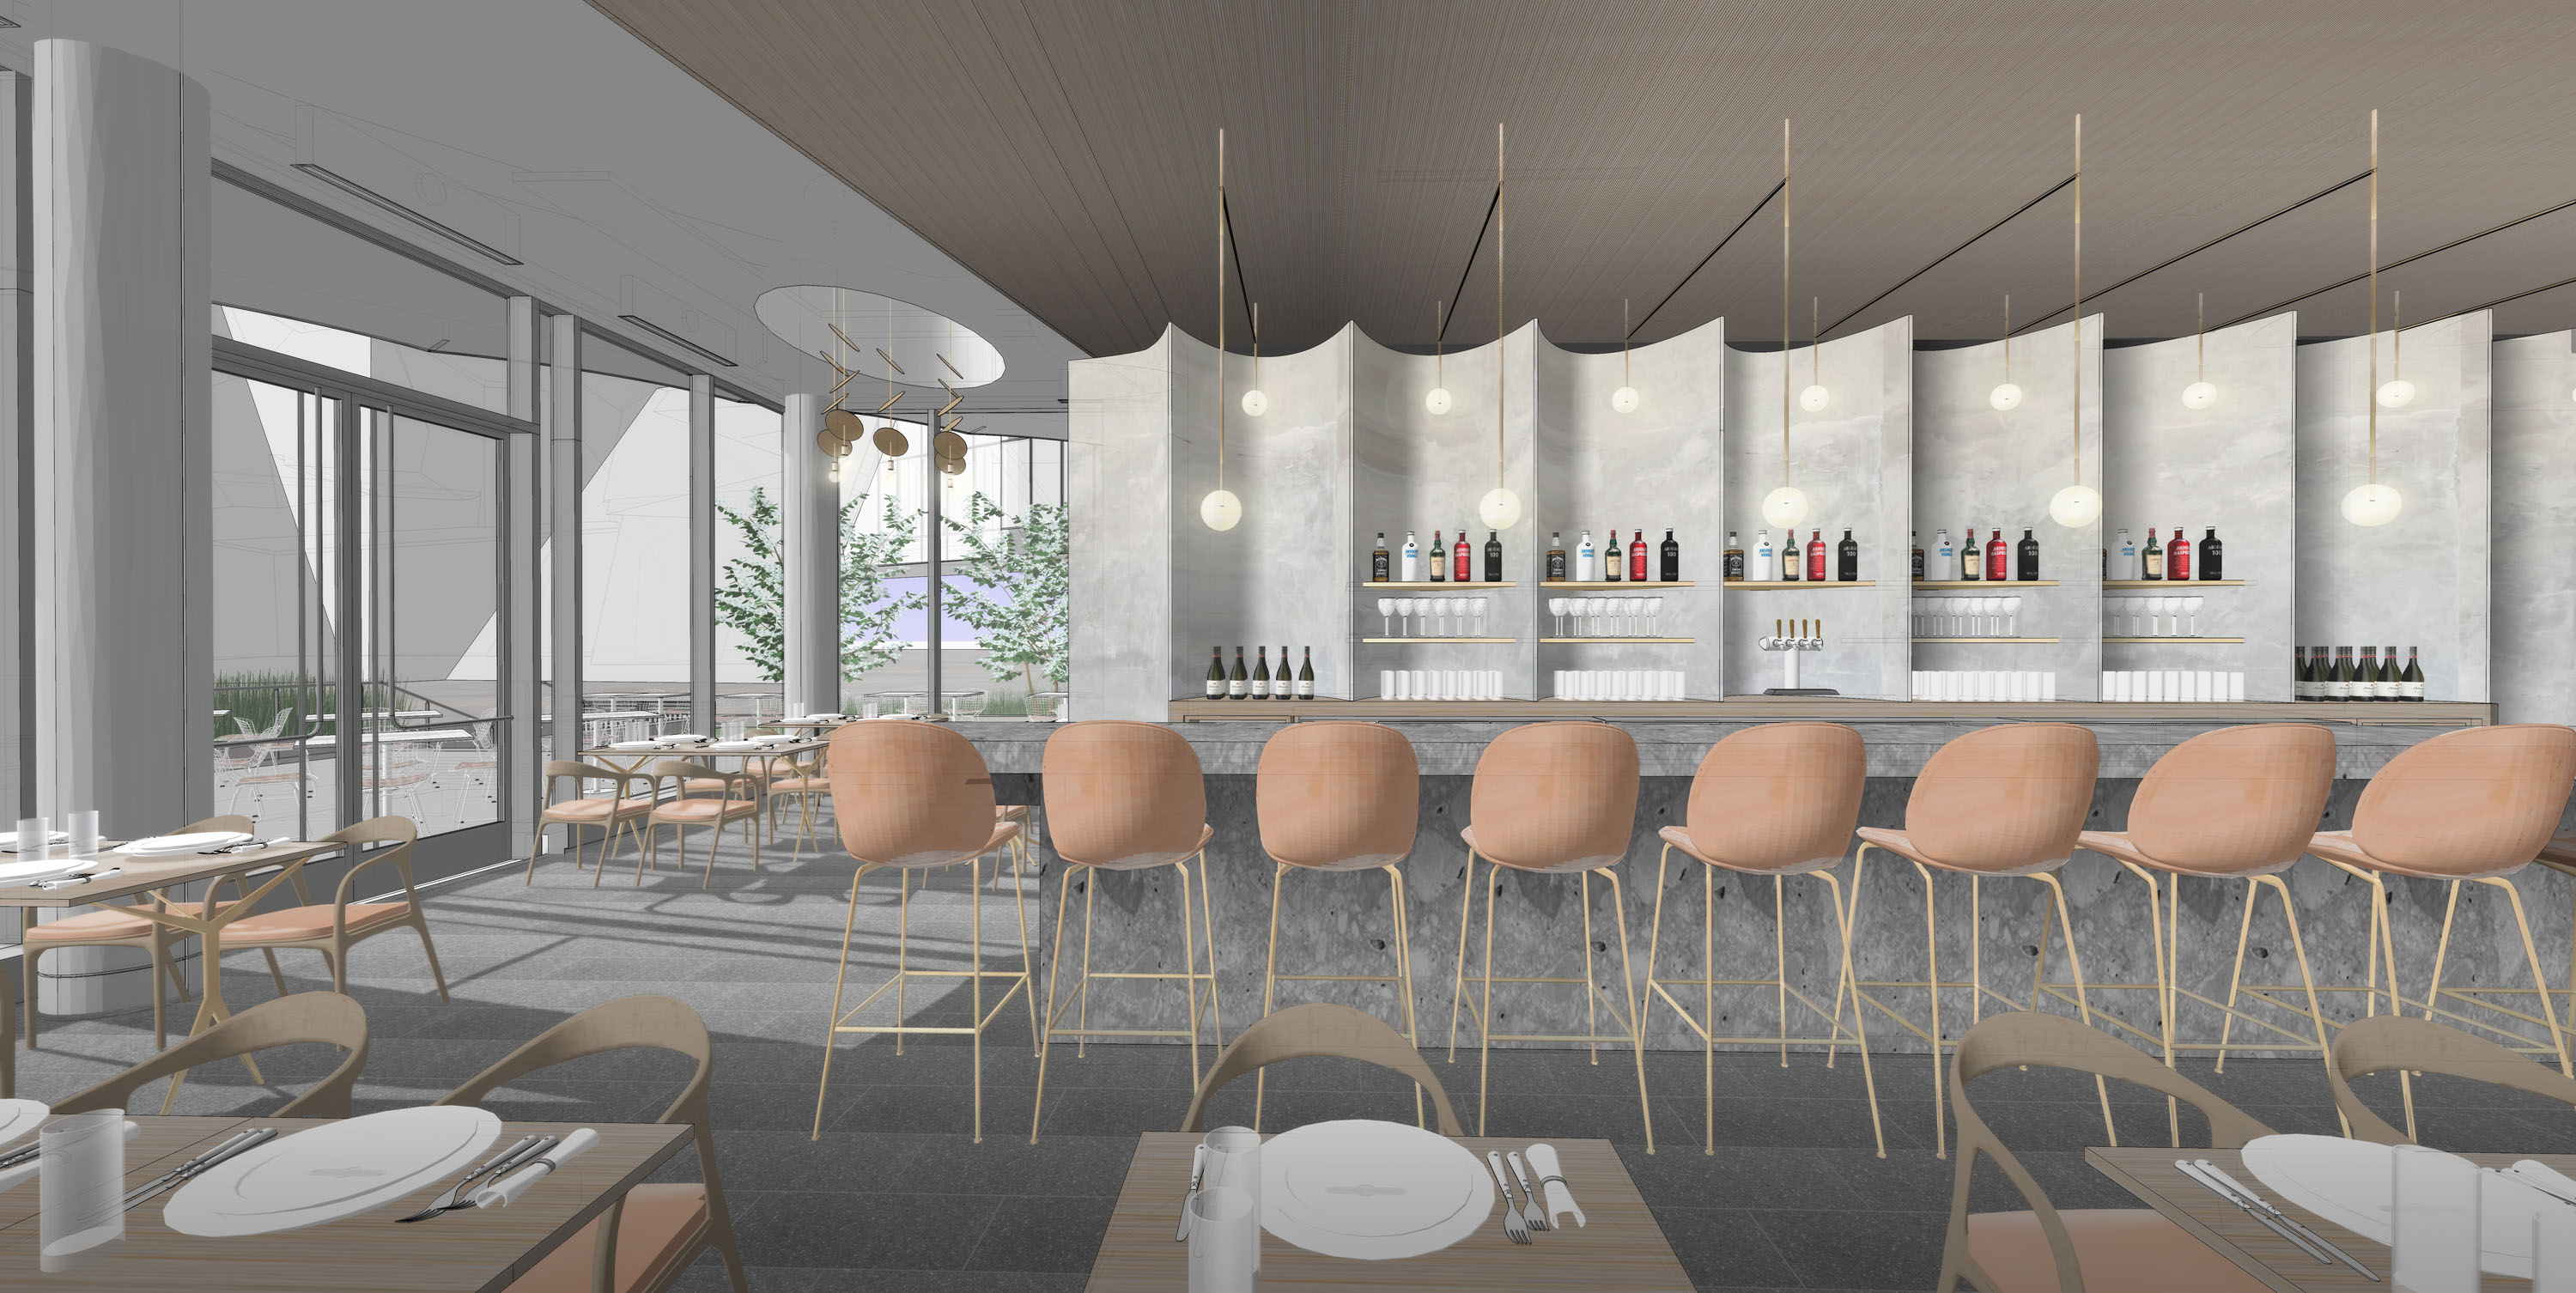 A rendering of the planned interior for The Ponti at the Denver Art Museum